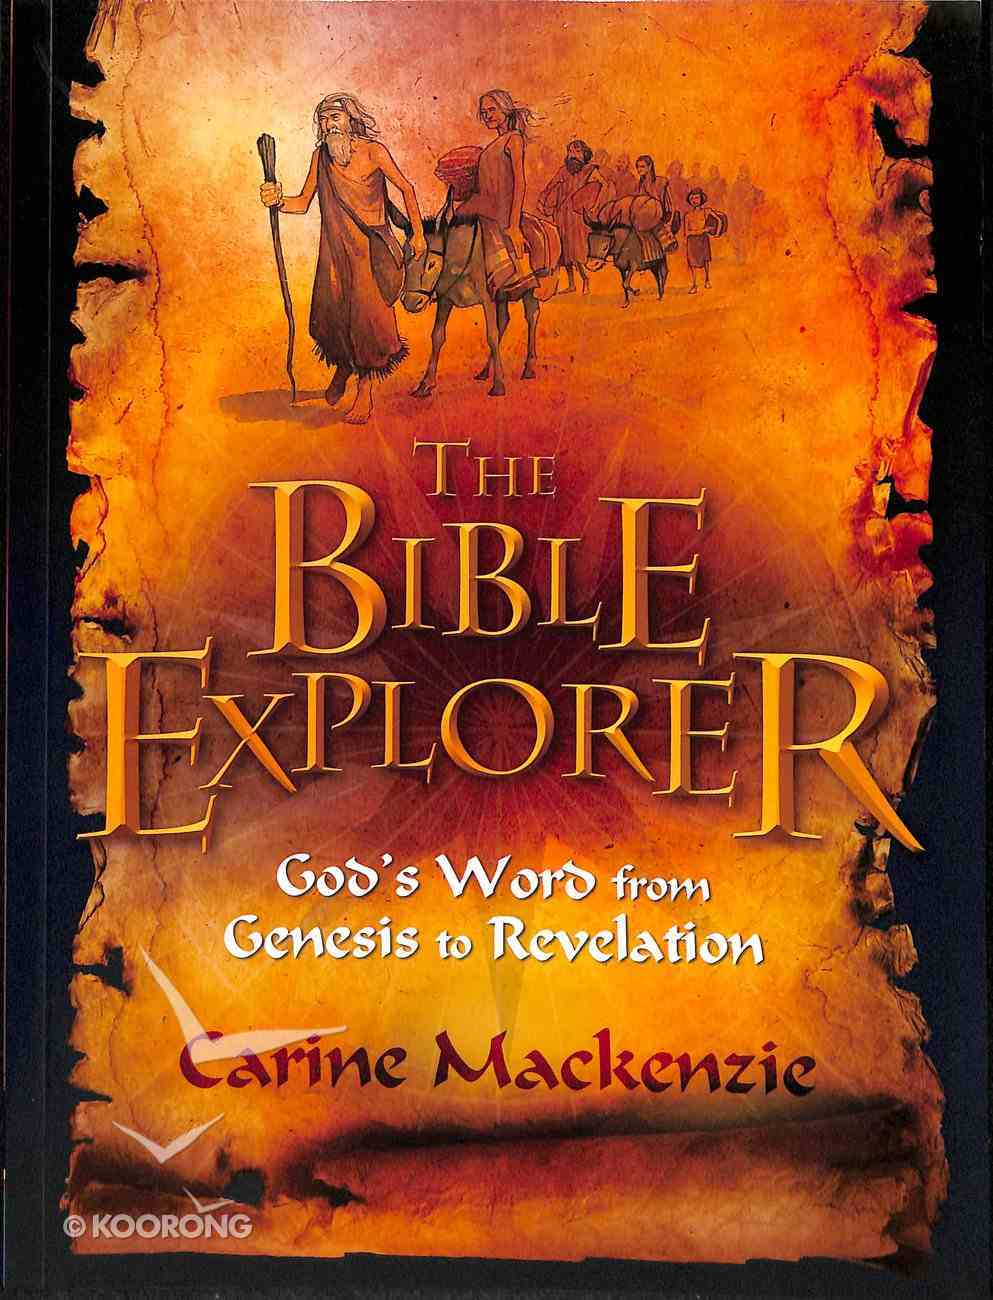 The Bible Explorer: God's Word From Genesis to Revelation Paperback